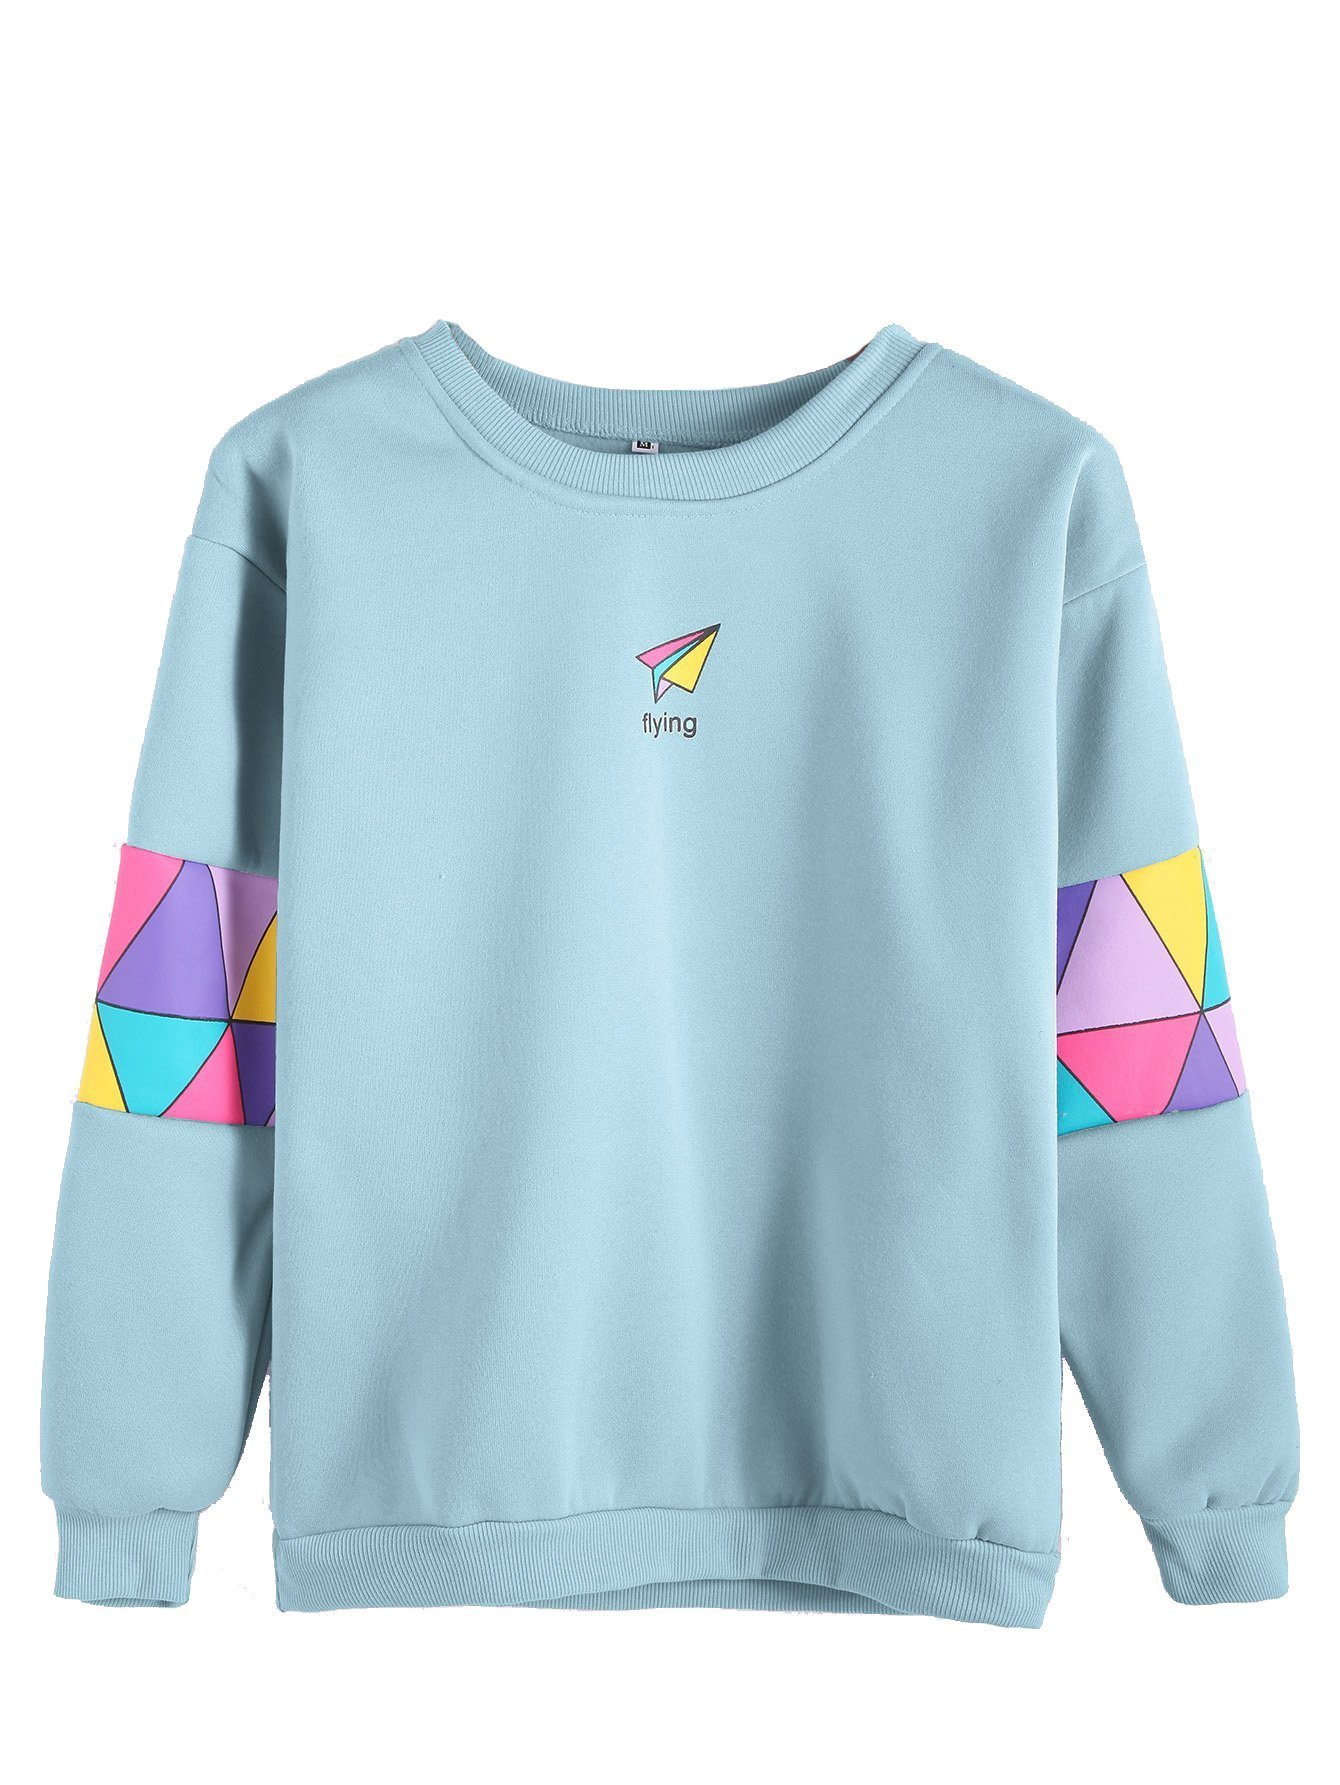 ROMWE Women's Top Long Sleeve Color Block Paper Airplane Graphic Print Patchwork Trim Tee Shirt Sweatshirt,Blue,XXL=US L